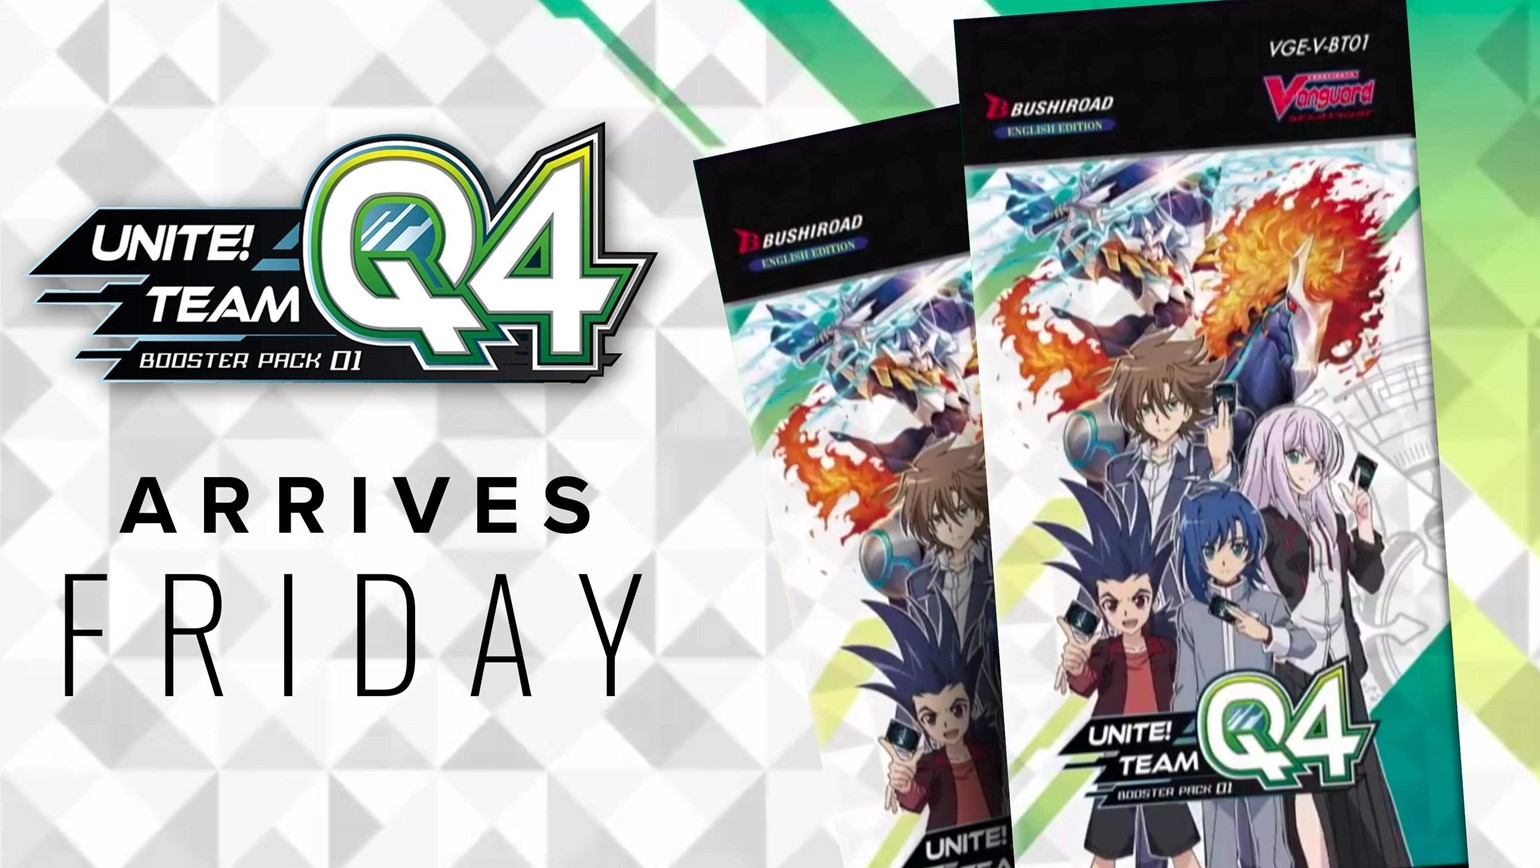 Cardfight!! Vanguard - Unite! Team Q4 Shakes Up Game with New Standard Format